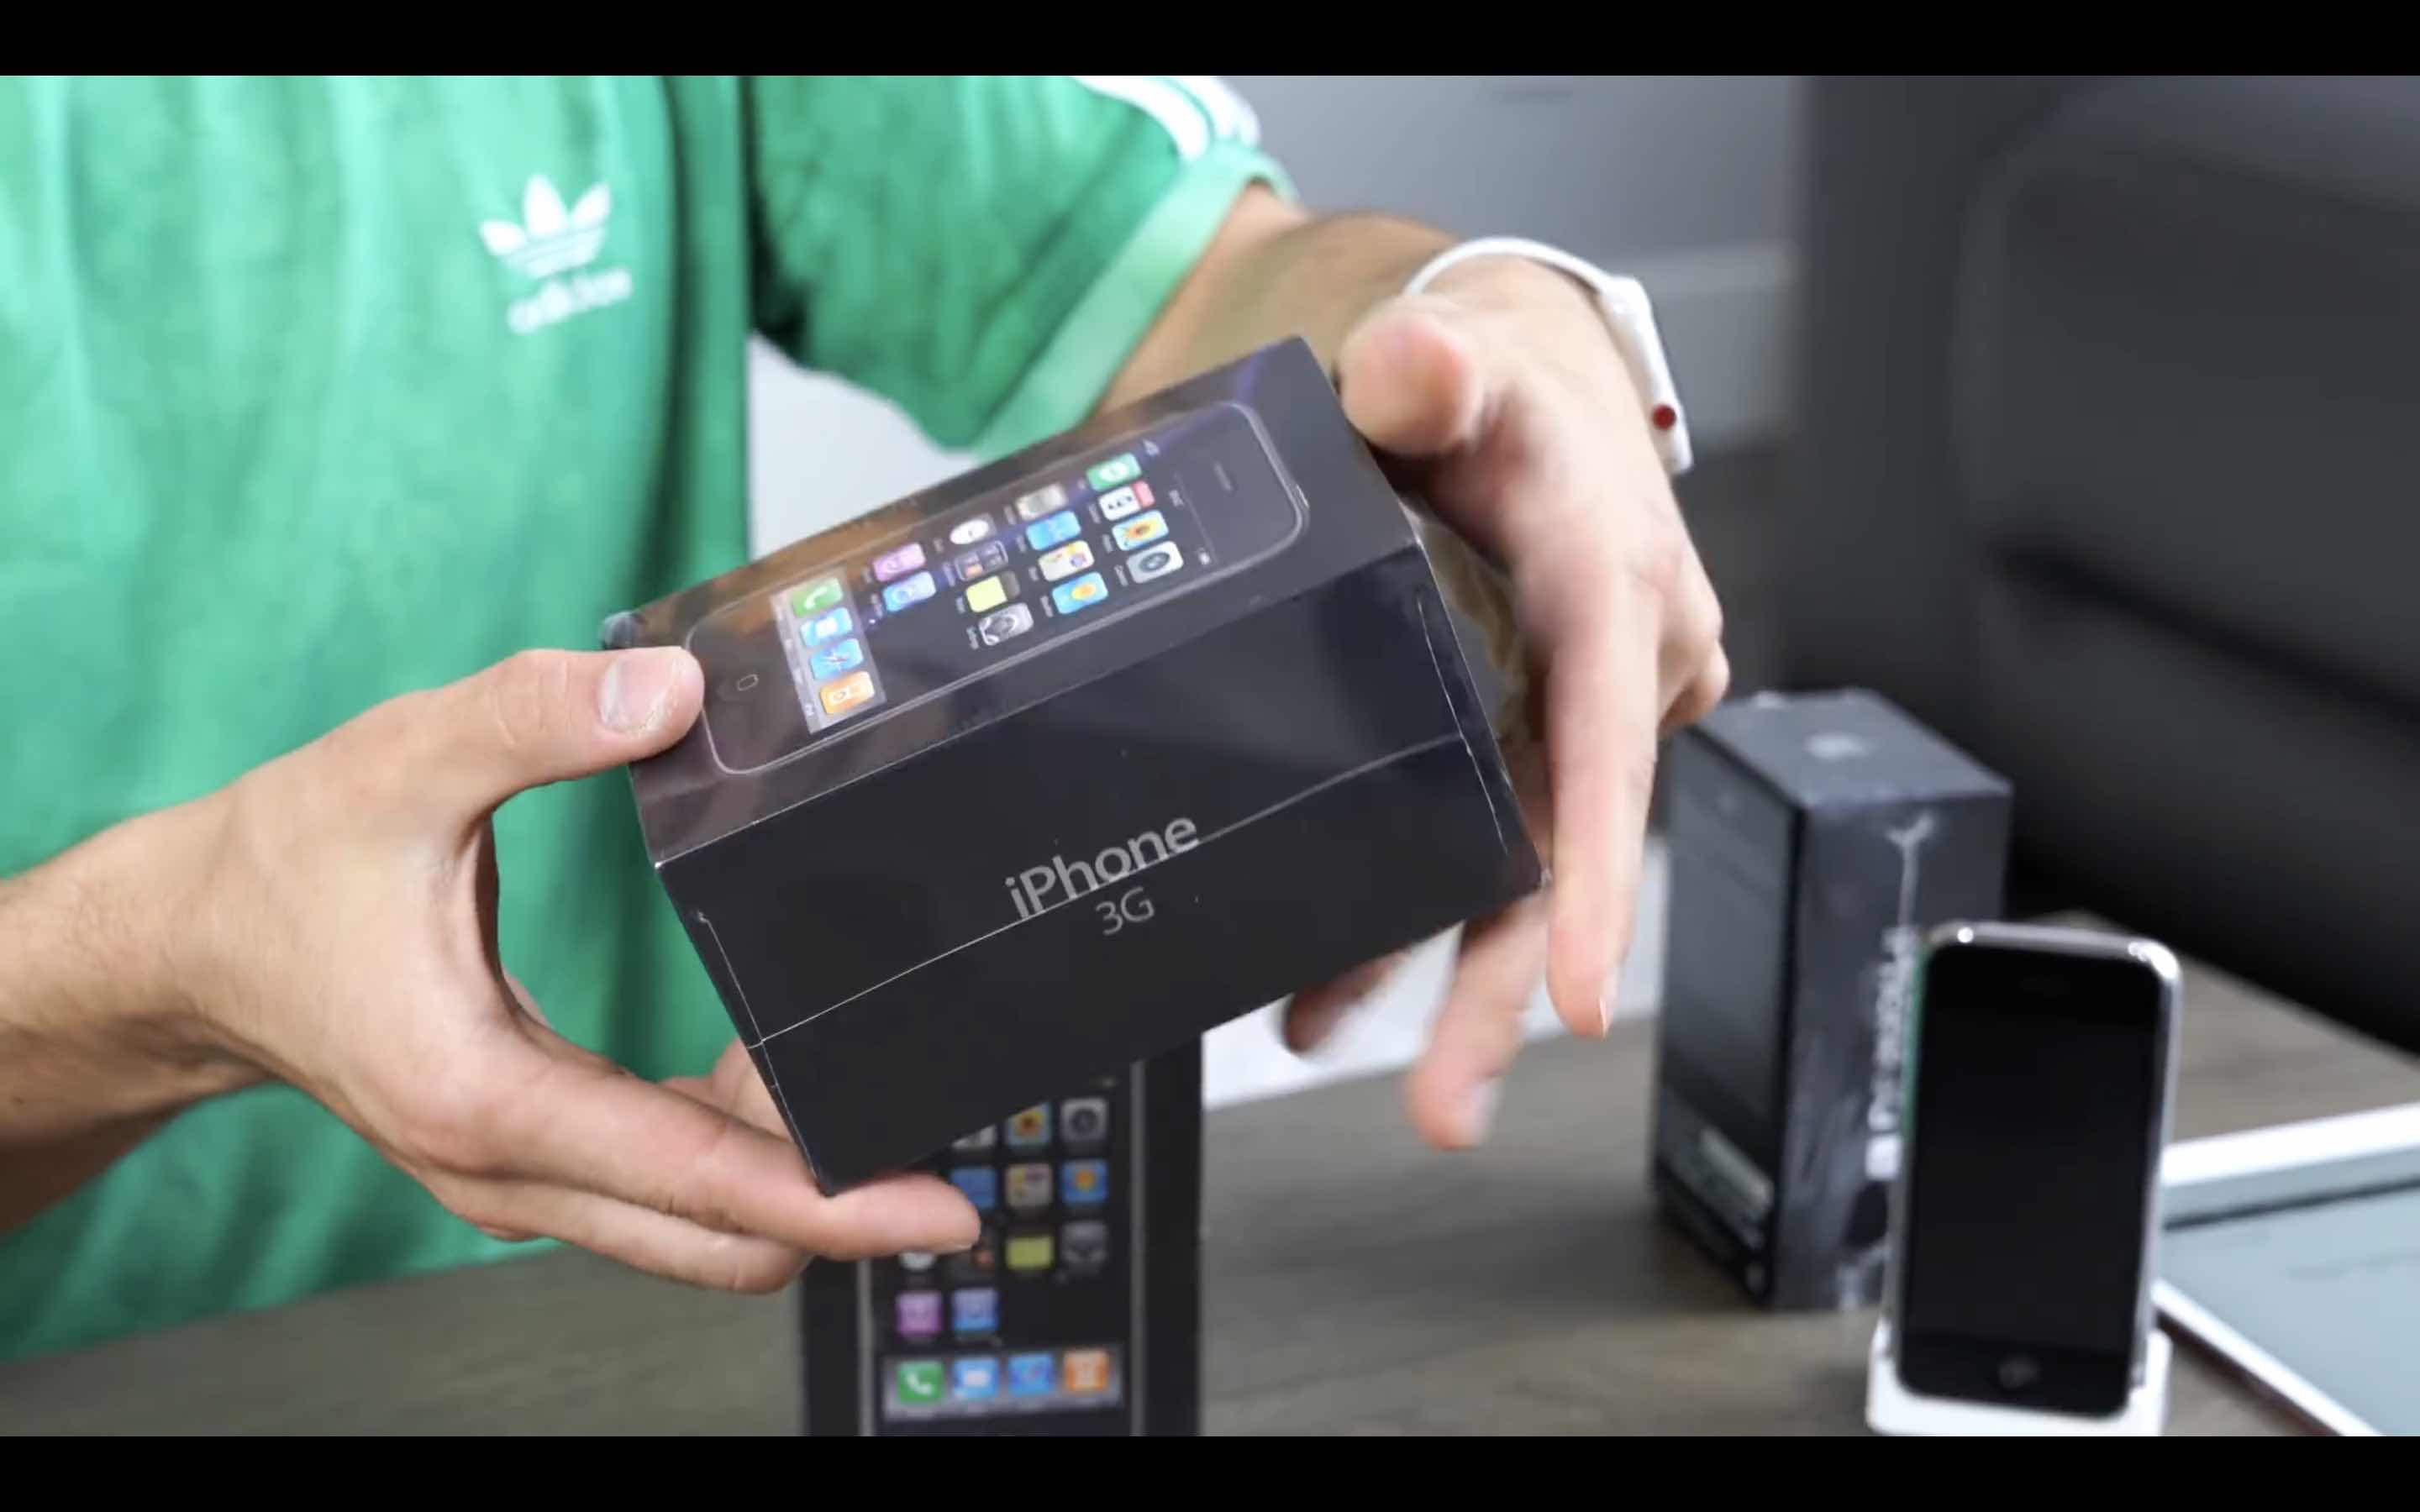 iPhone3G unboxing 1